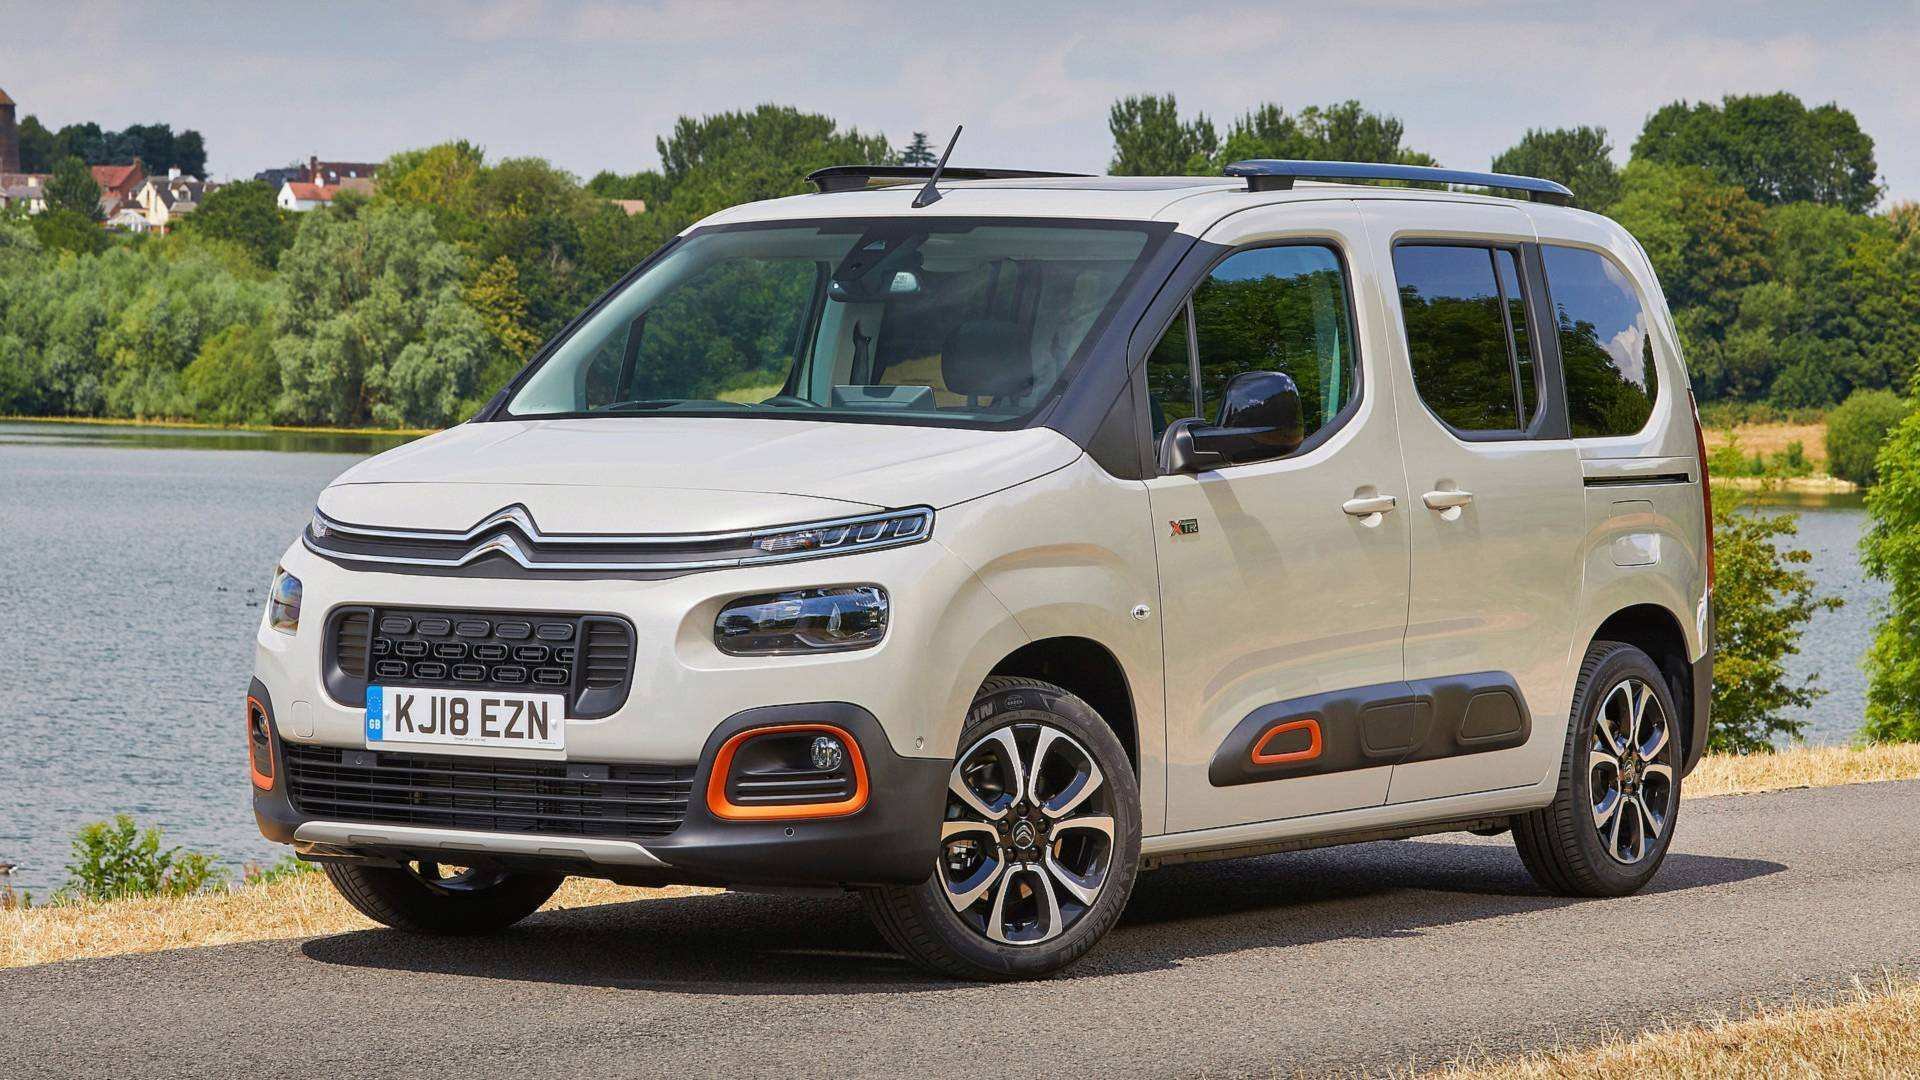 34 All New 2019 Citroen Berlingo Rumors for 2019 Citroen Berlingo